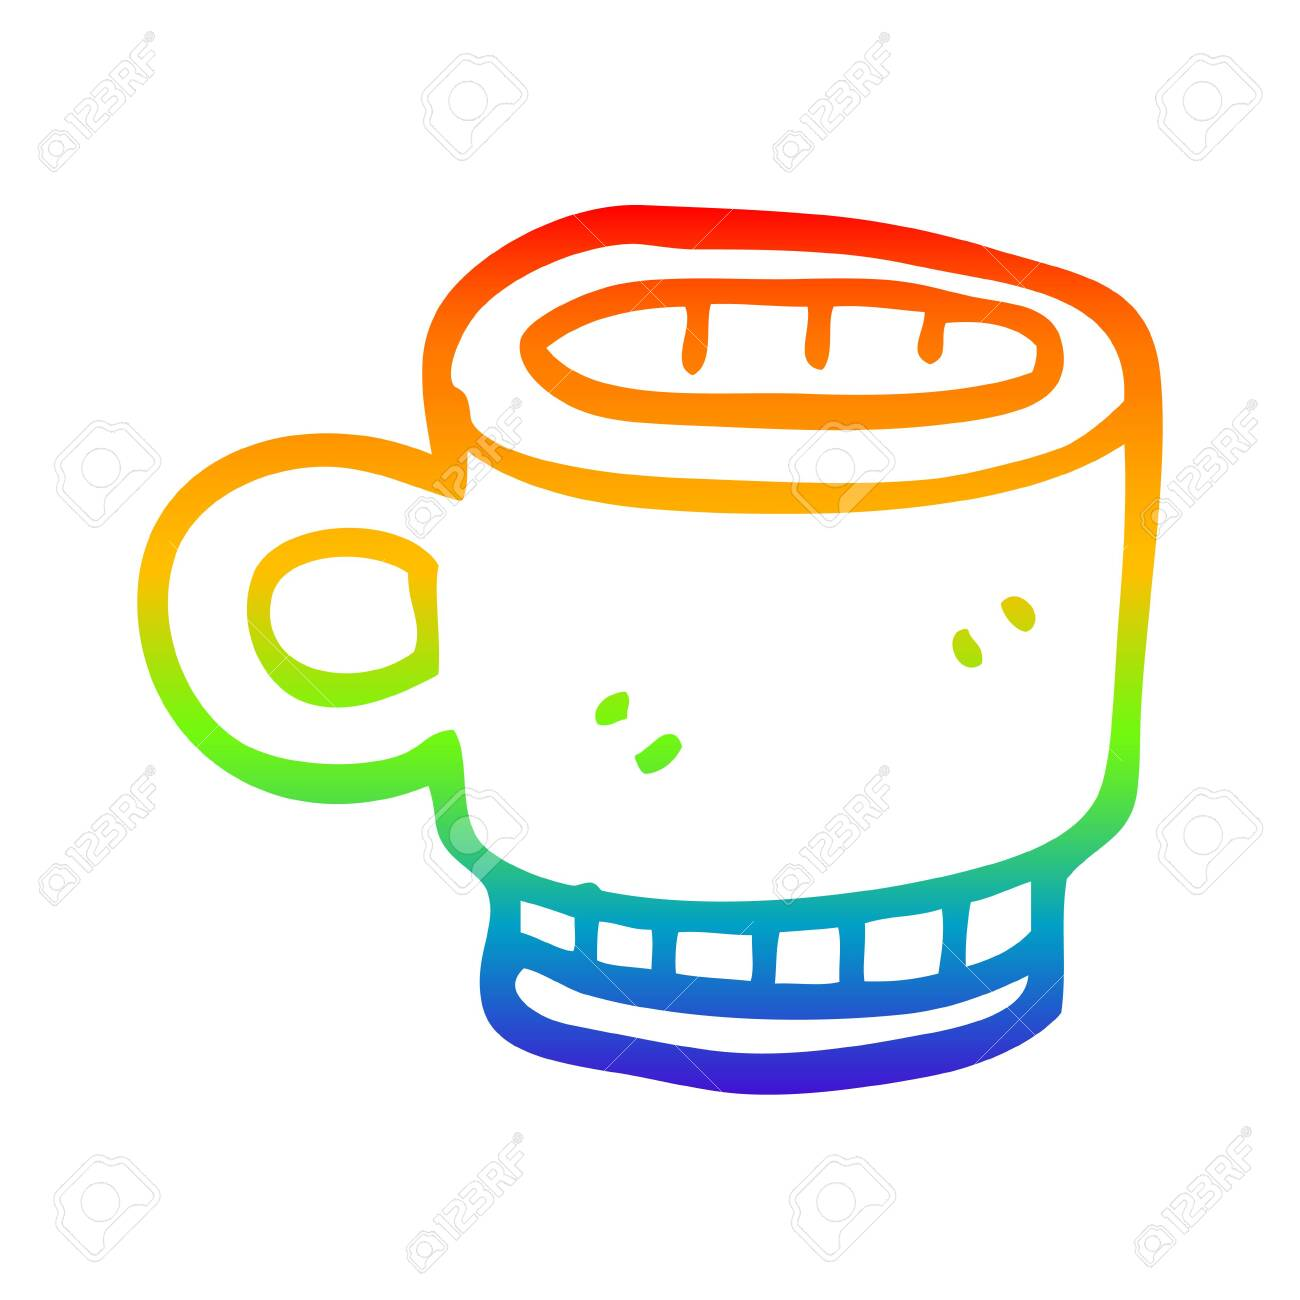 Rainbow Gradient Line Drawing Of A Cartoon Coffee Mug Royalty Free Cliparts Vectors And Stock Illustration Image 130110340